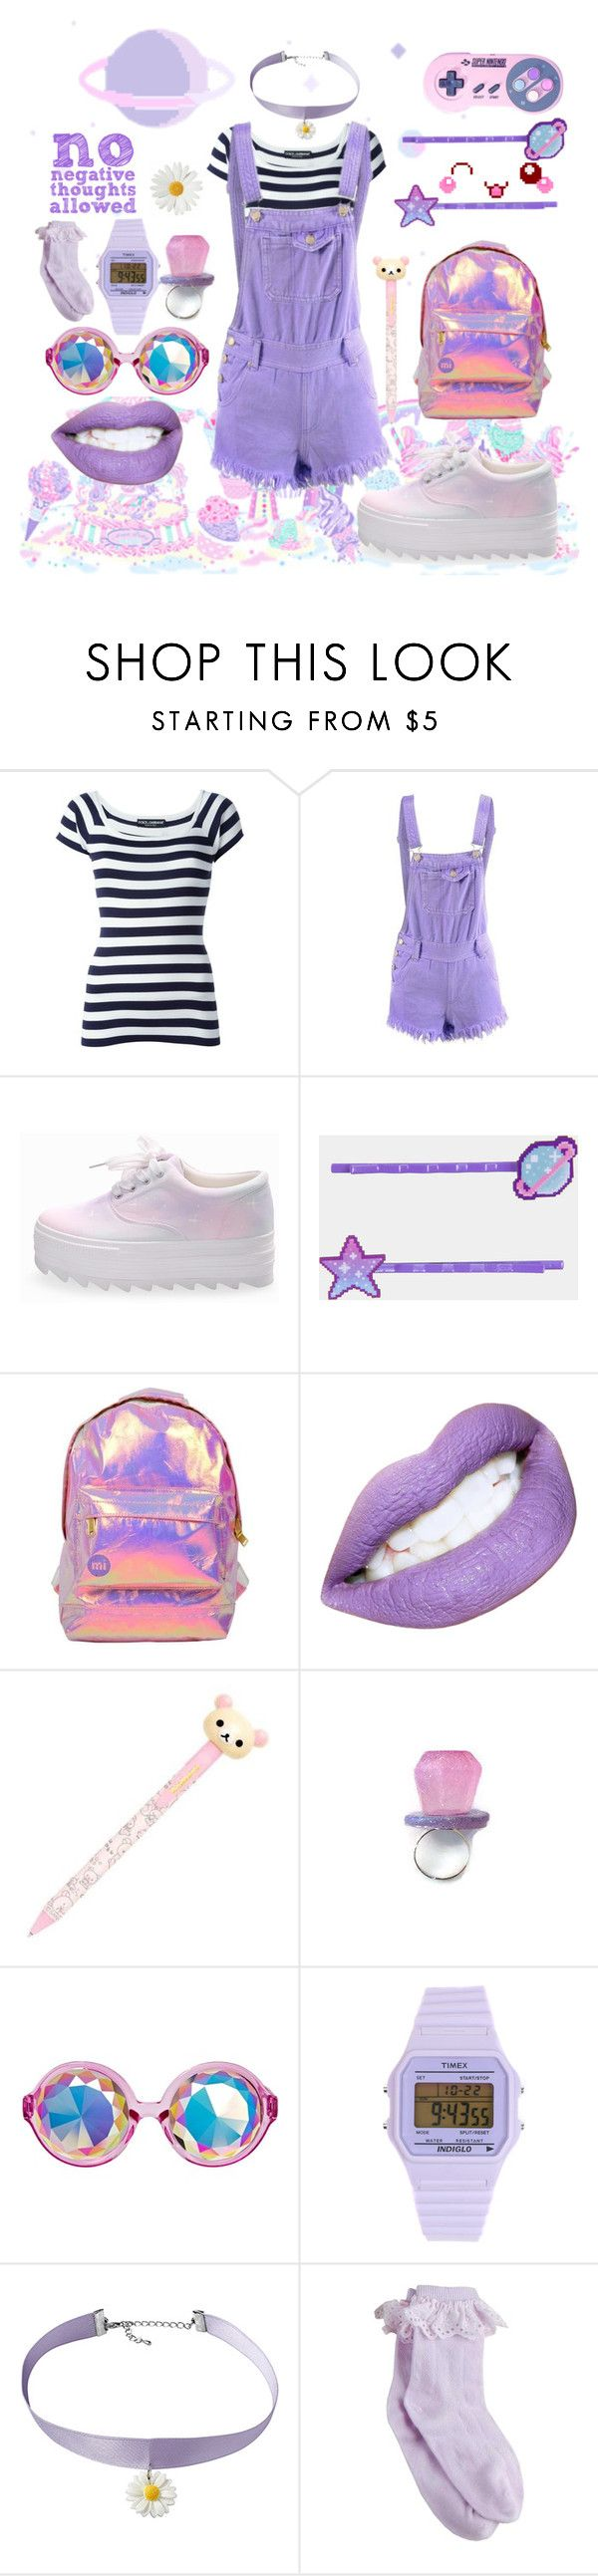 """wow, I'm dazed"" by liz5463 ❤ liked on Polyvore featuring cutekawaii, Dolce&Gabbana, Miss Selfridge and Timex"